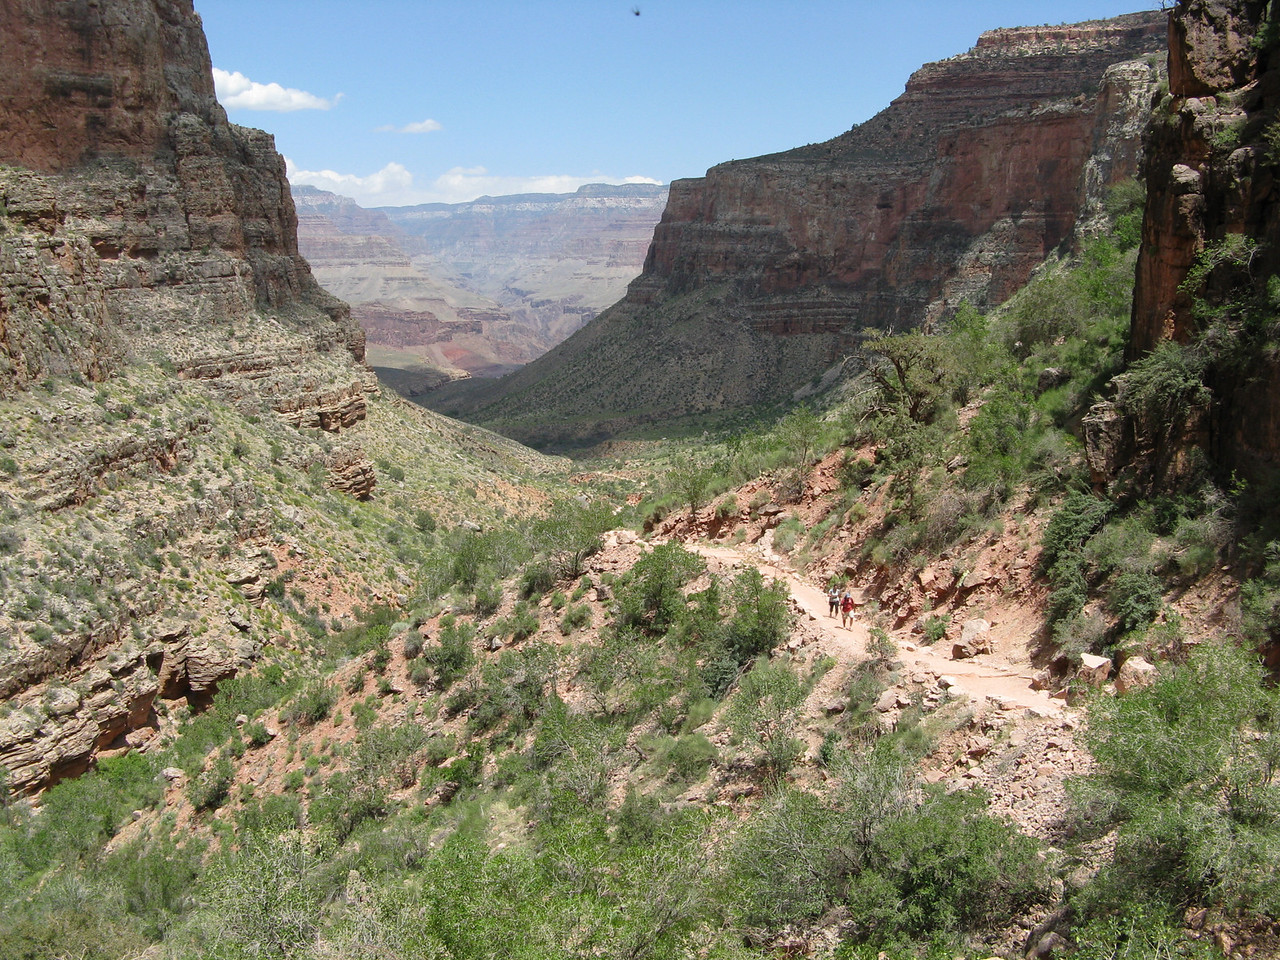 The canyon from above.